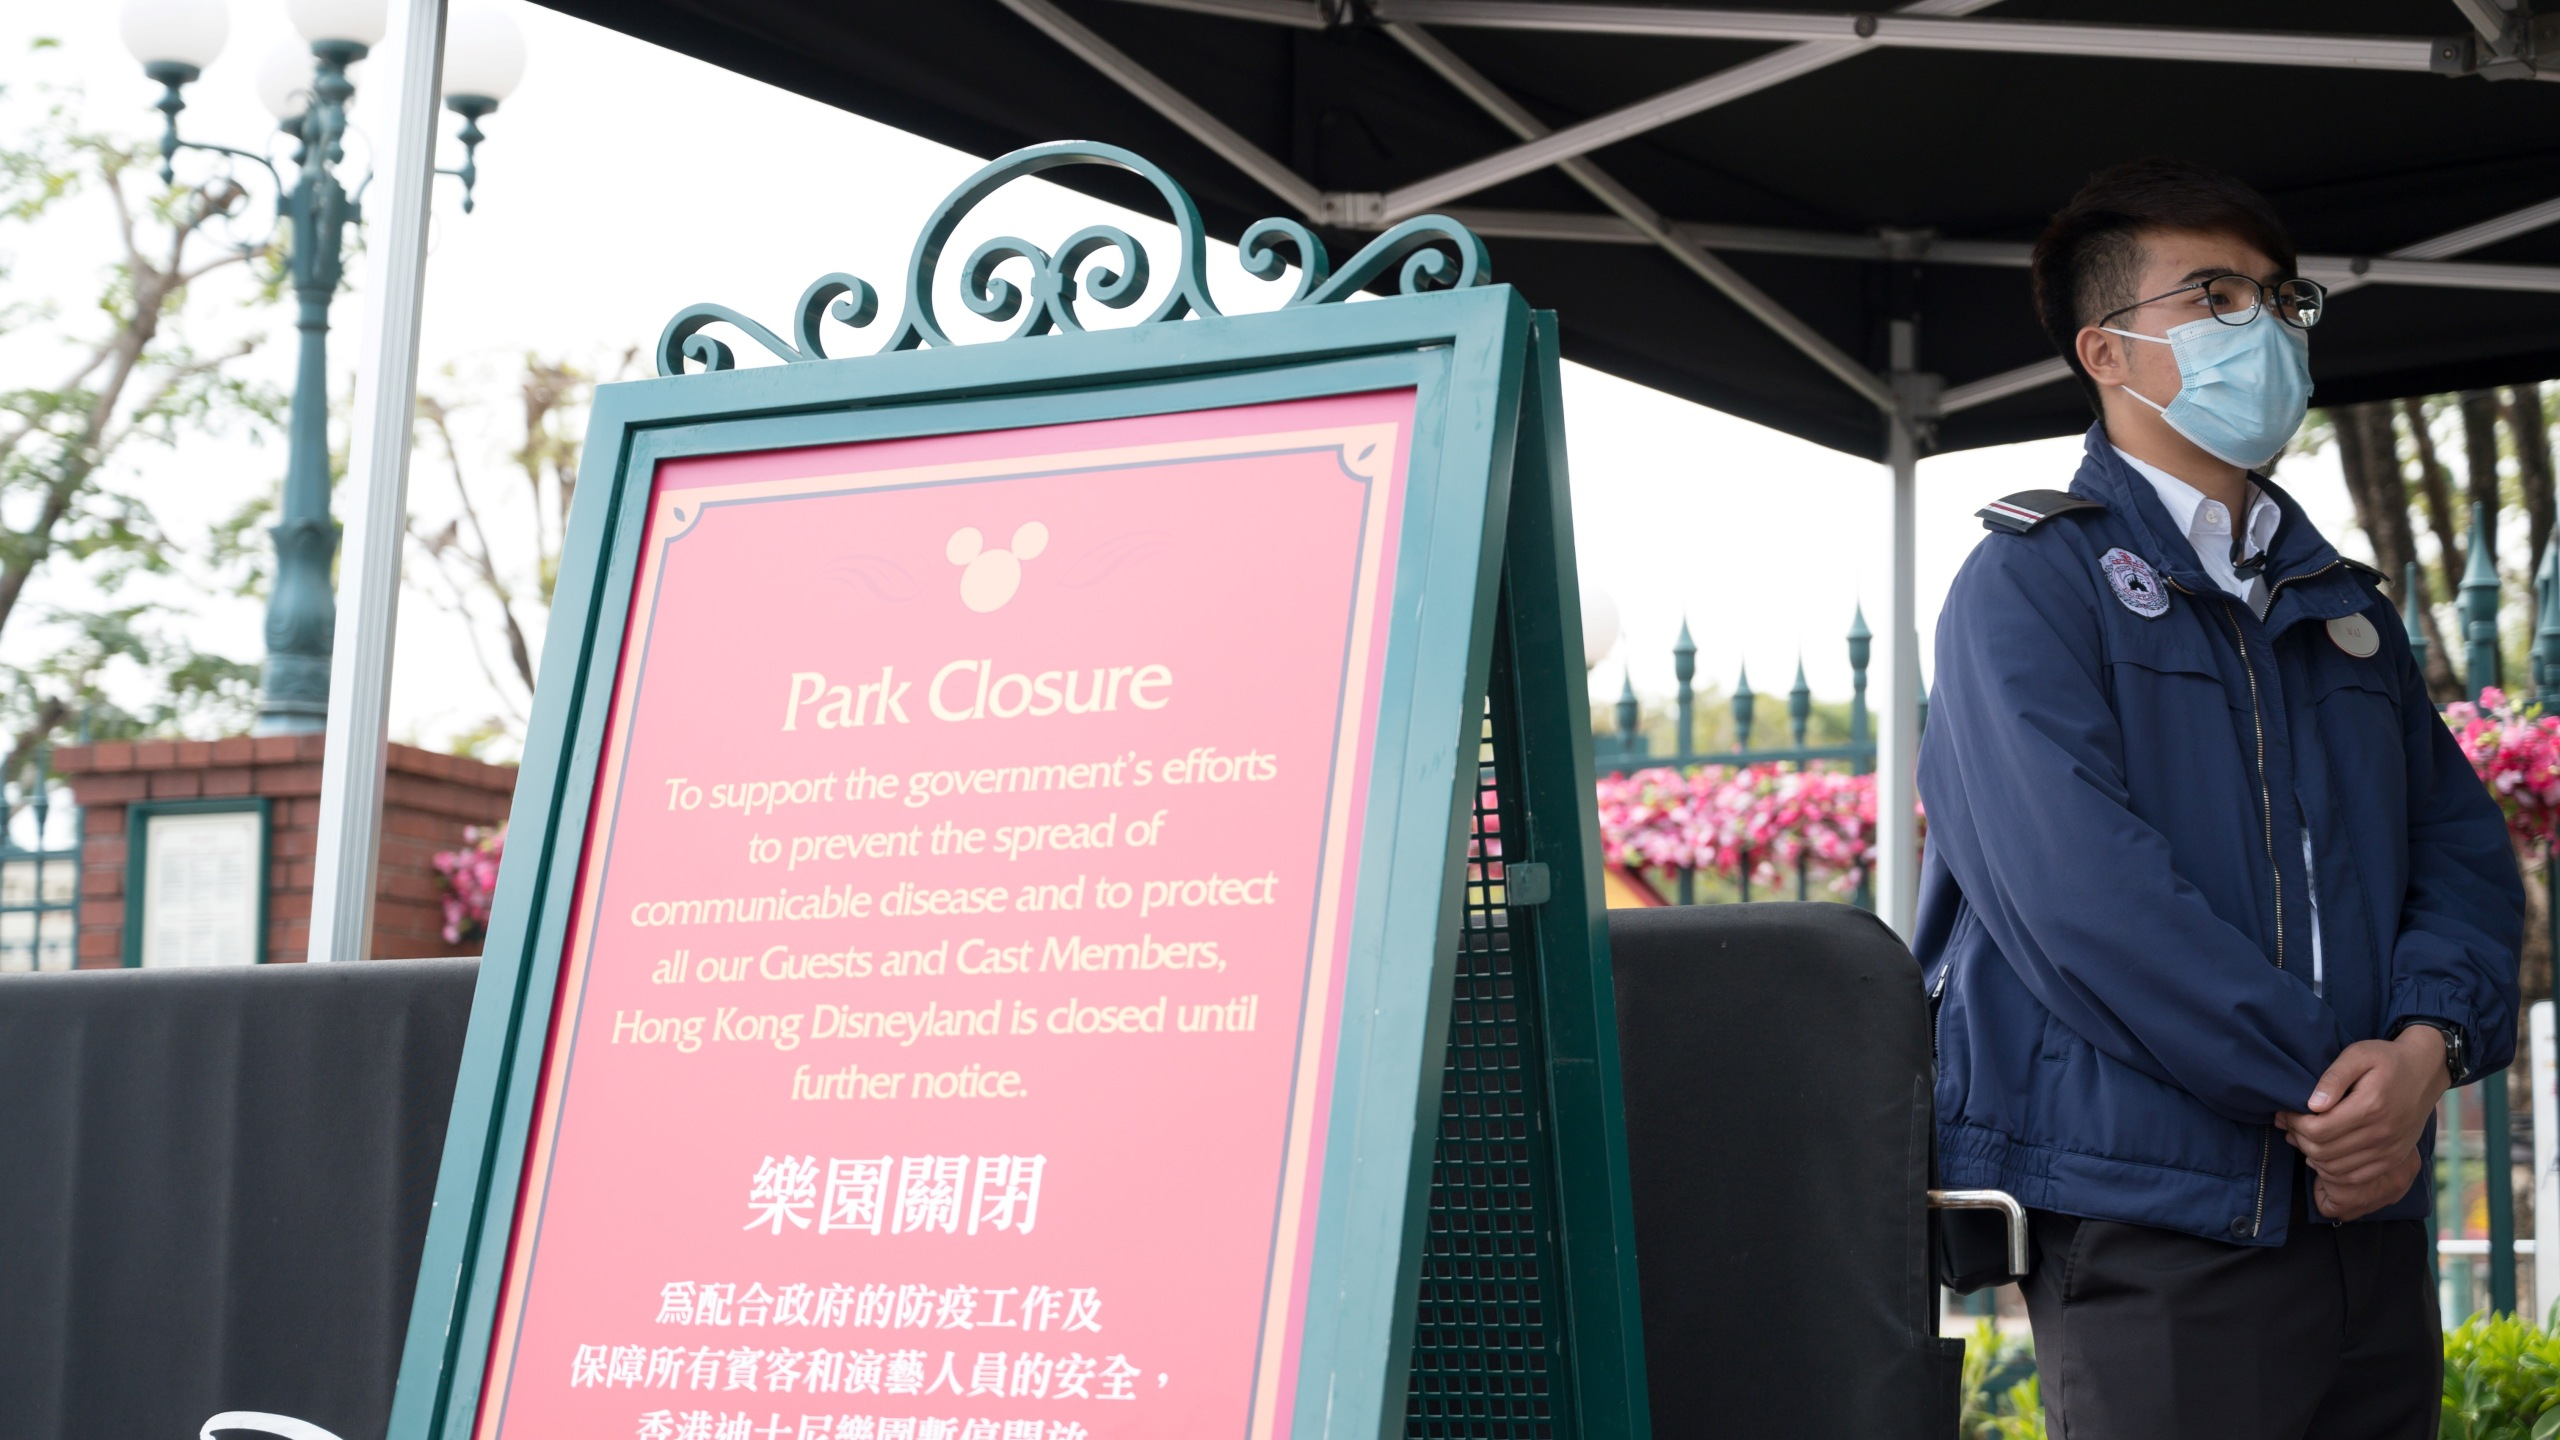 A member of staff wearing a mask stands next to a sign announcing the park's closure at Hong Kong Disneyland in Hong Kong on January 26, 2020, after it announced it was shutting its doors until further notice over a deadly virus outbreak in central China. (Ayaka MCGILL / AFP/Getty Images)